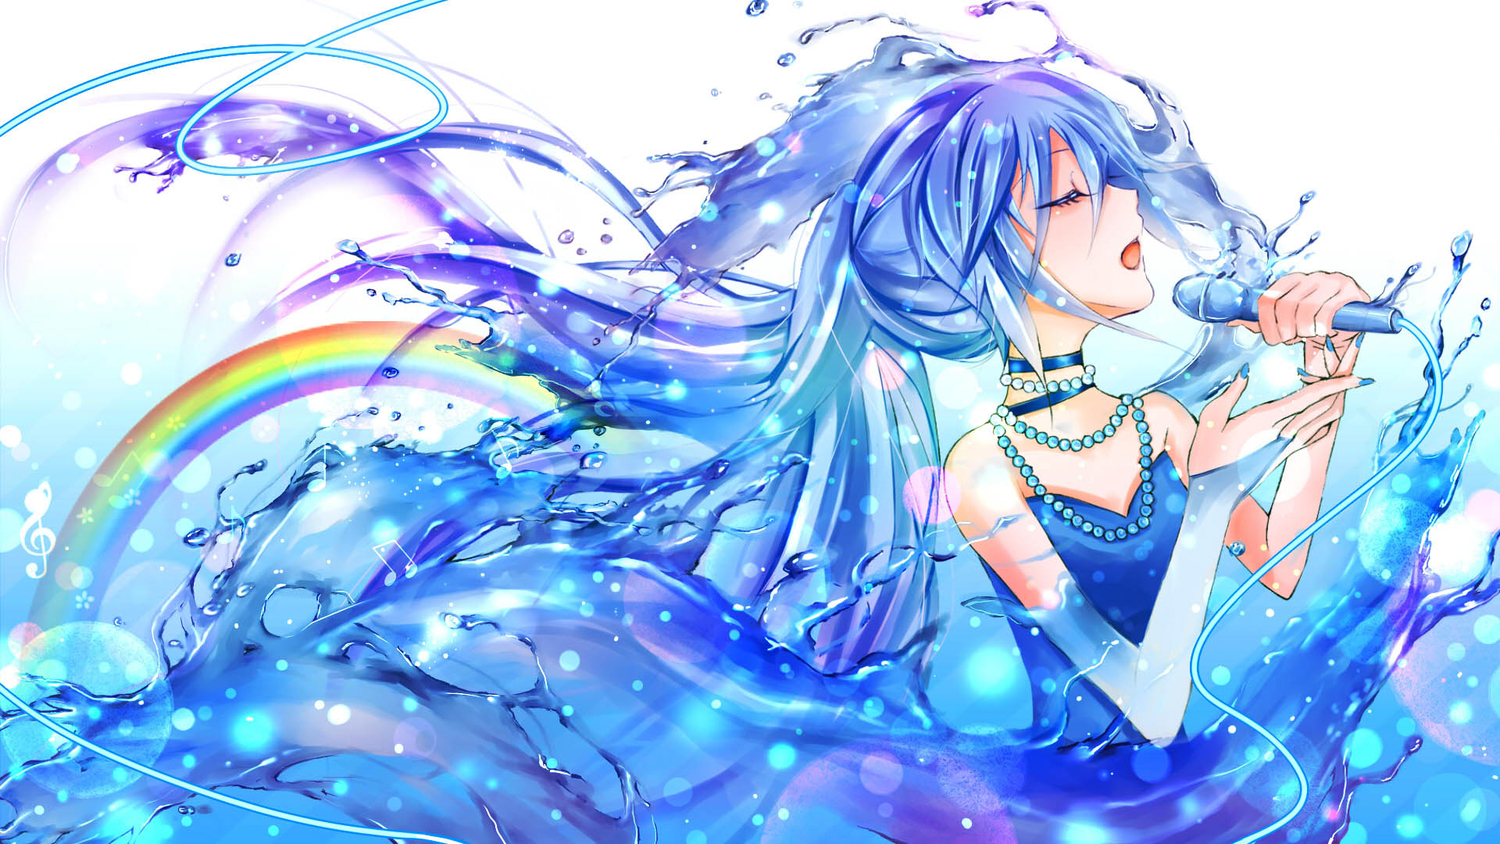 blue_hair chaperu_(mukuone) hatsune_miku jpeg_artifacts microphone rainbow vocaloid water